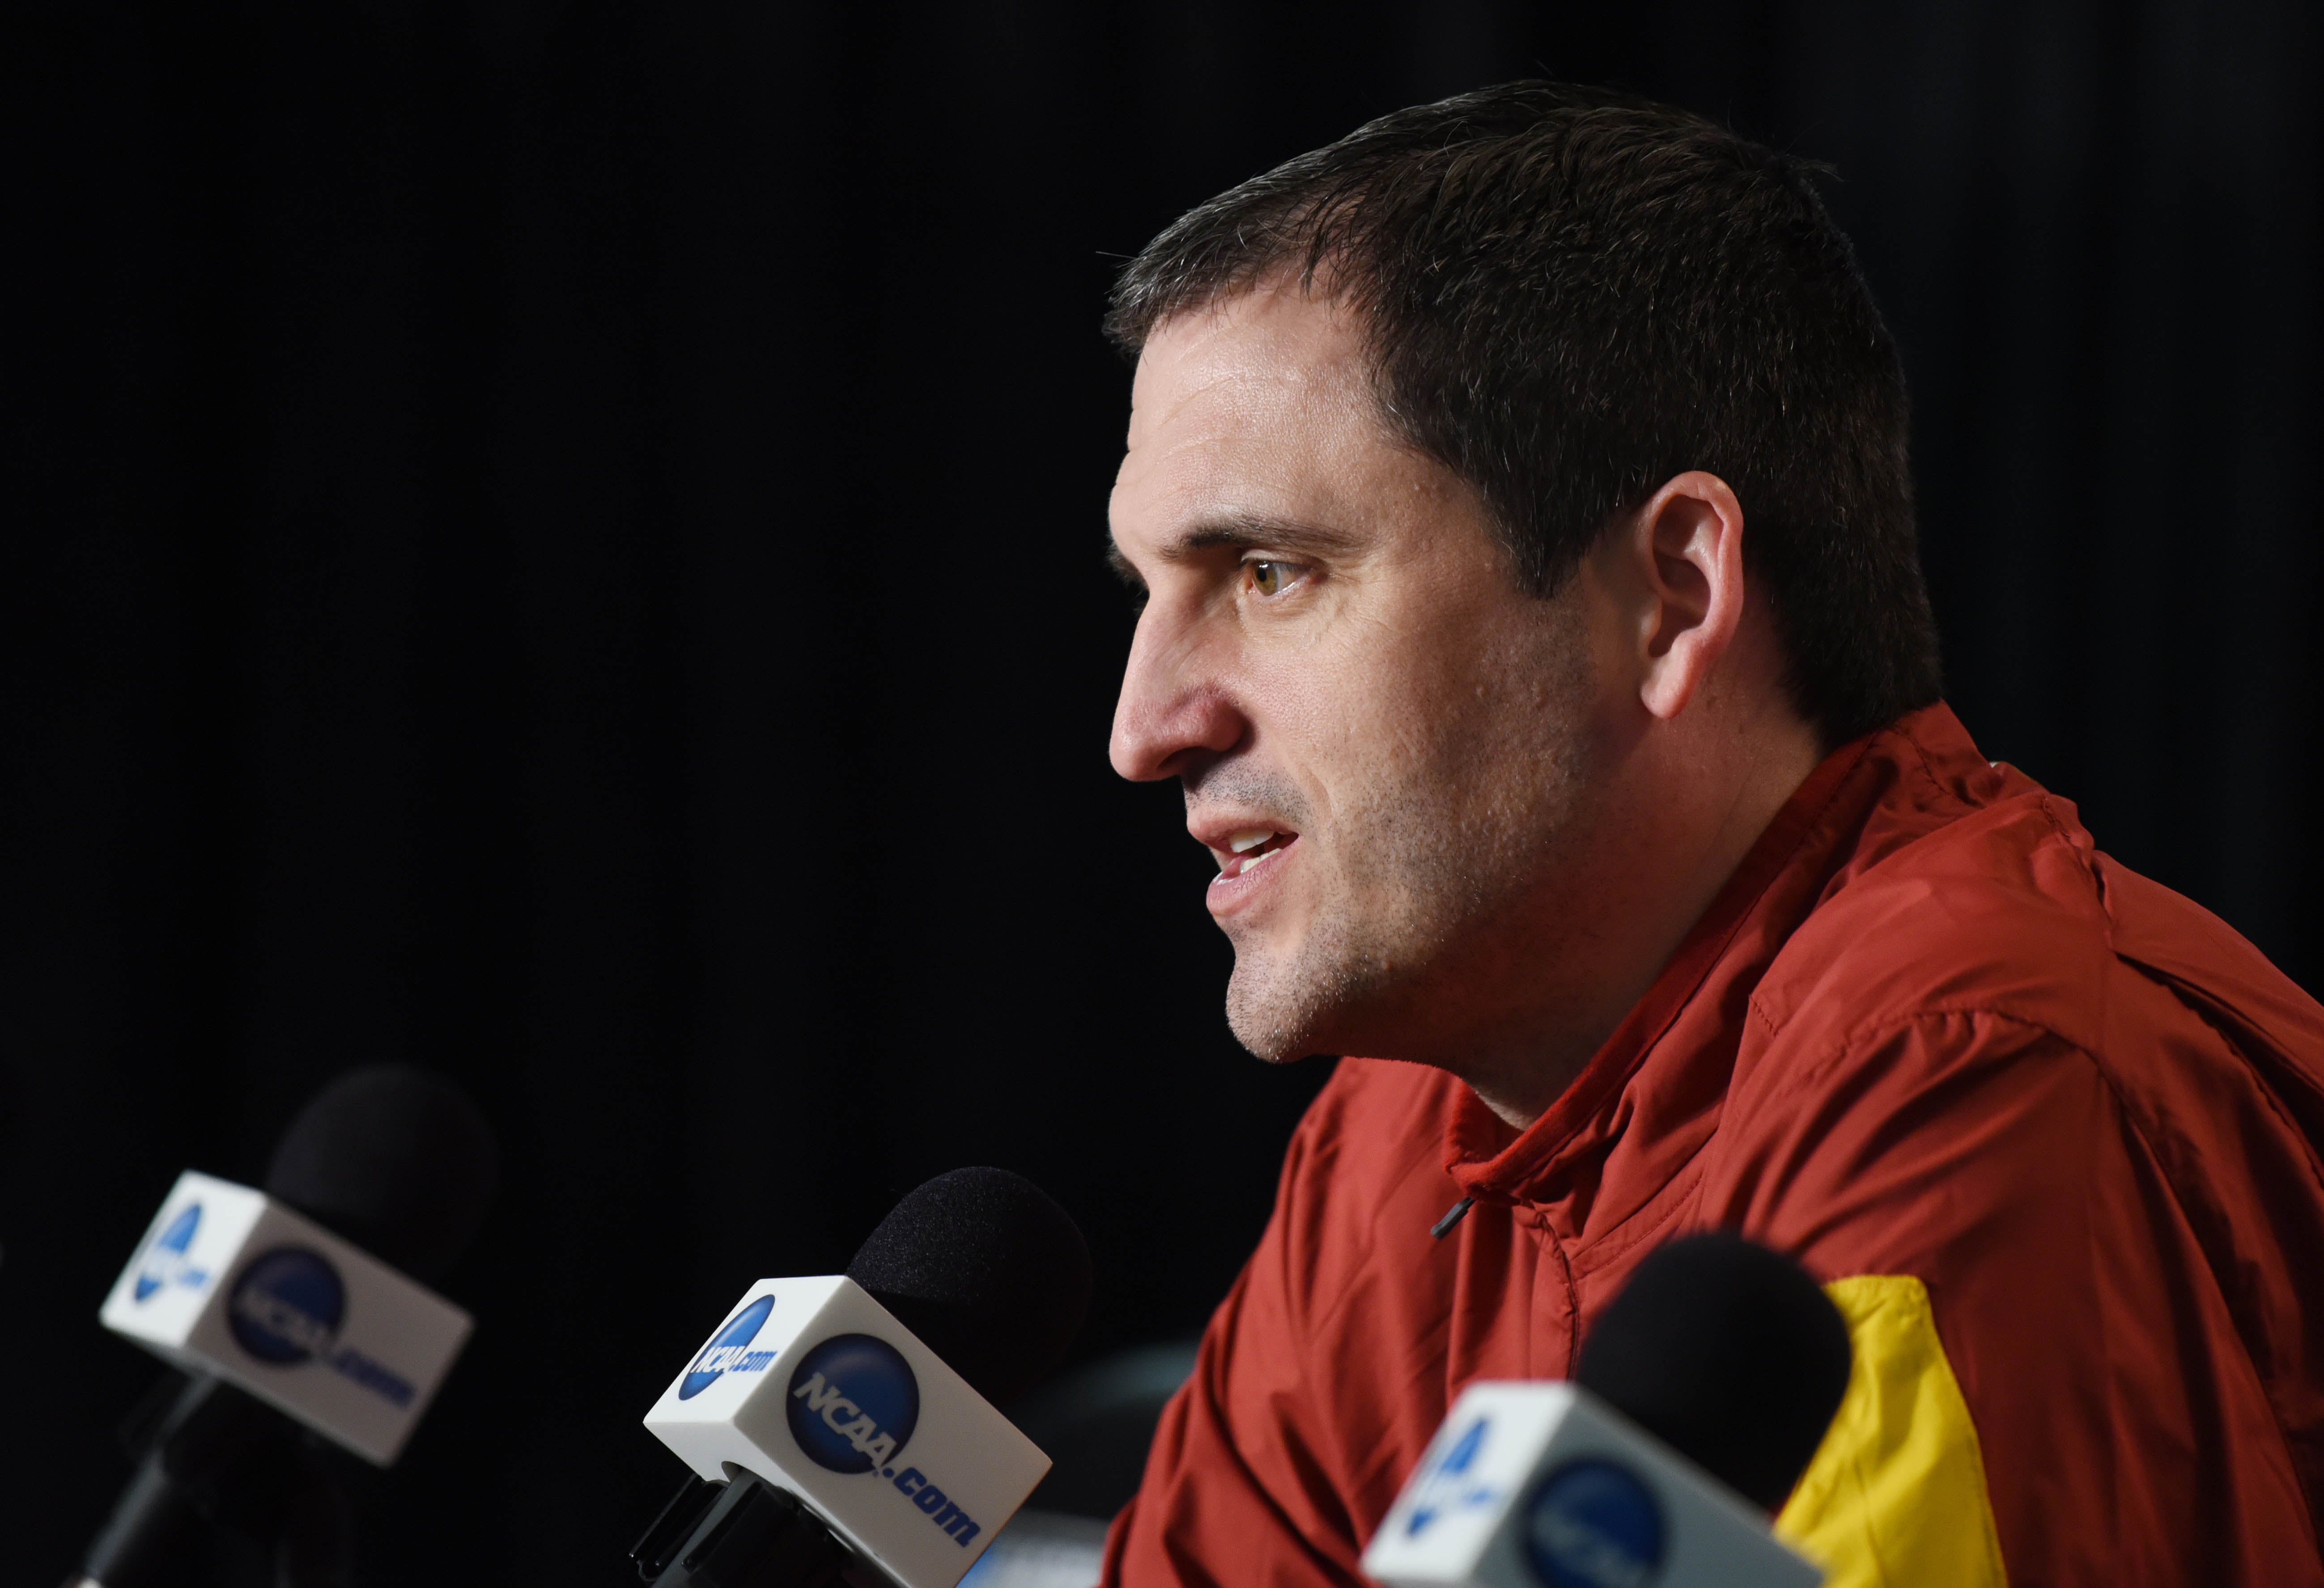 Mar 24, 2016; Chicago, IL, USA; Iowa State Cyclones head coach Steve Prohm at a press conference during practice the day before the semifinals of the Midwest regional of the NCAA Tournament at United Center. Mandatory Credit: David Banks-USA TODAY Sports